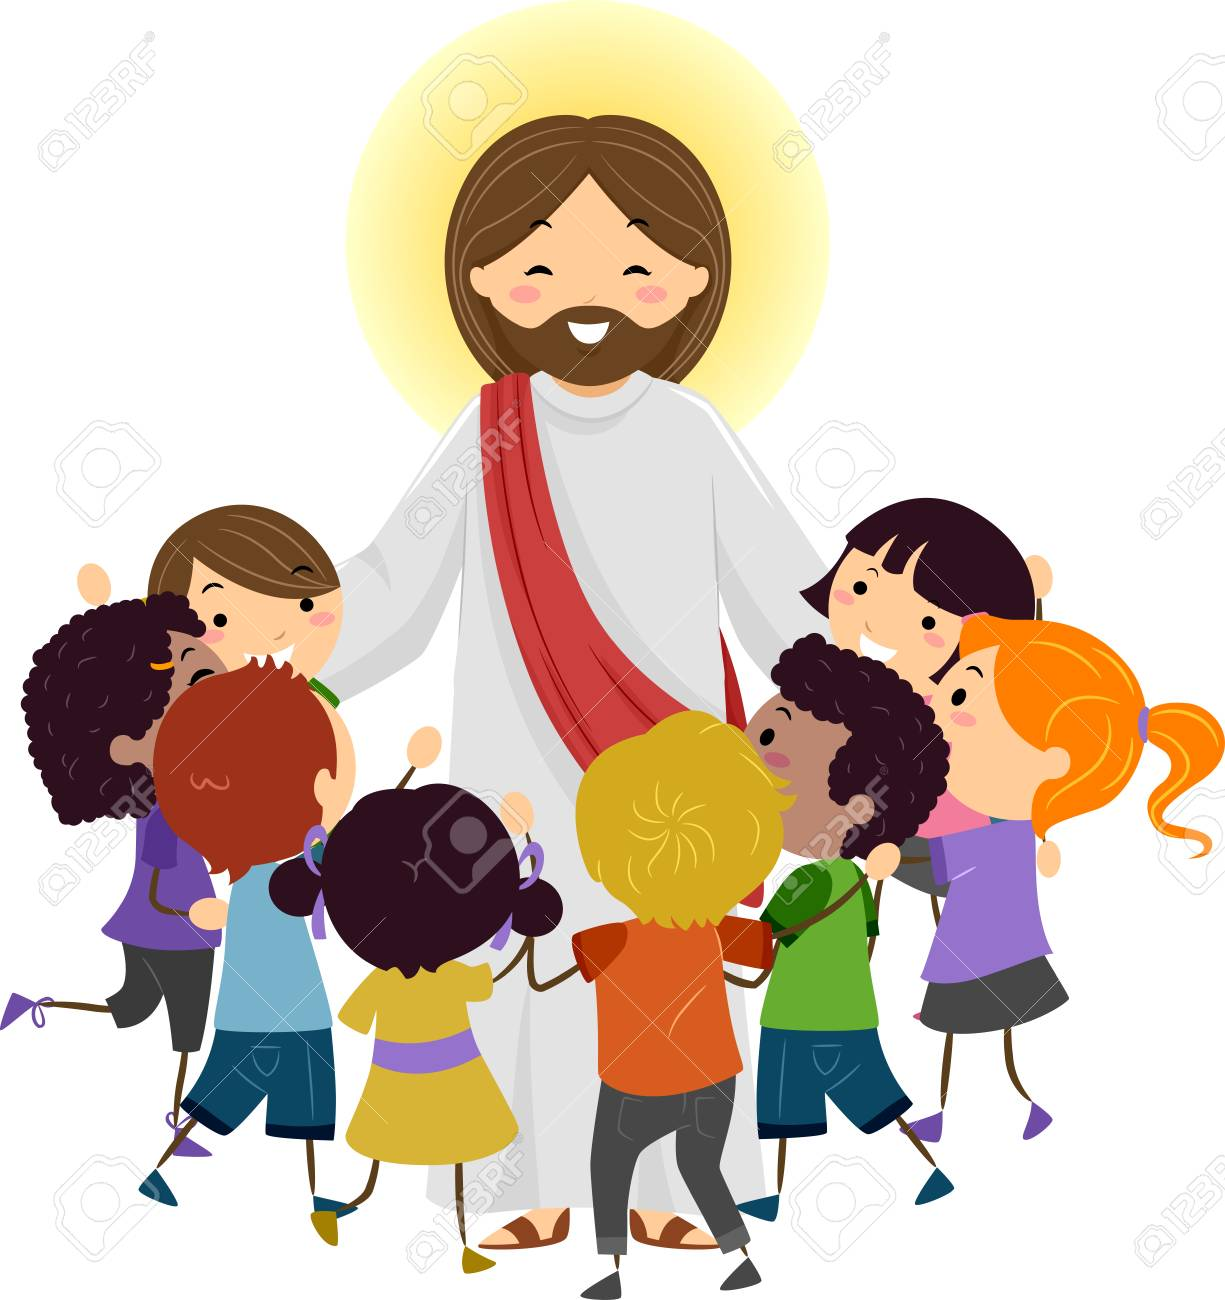 illustration of jesus christ being surrounded by stickman kids stock rh 123rf com